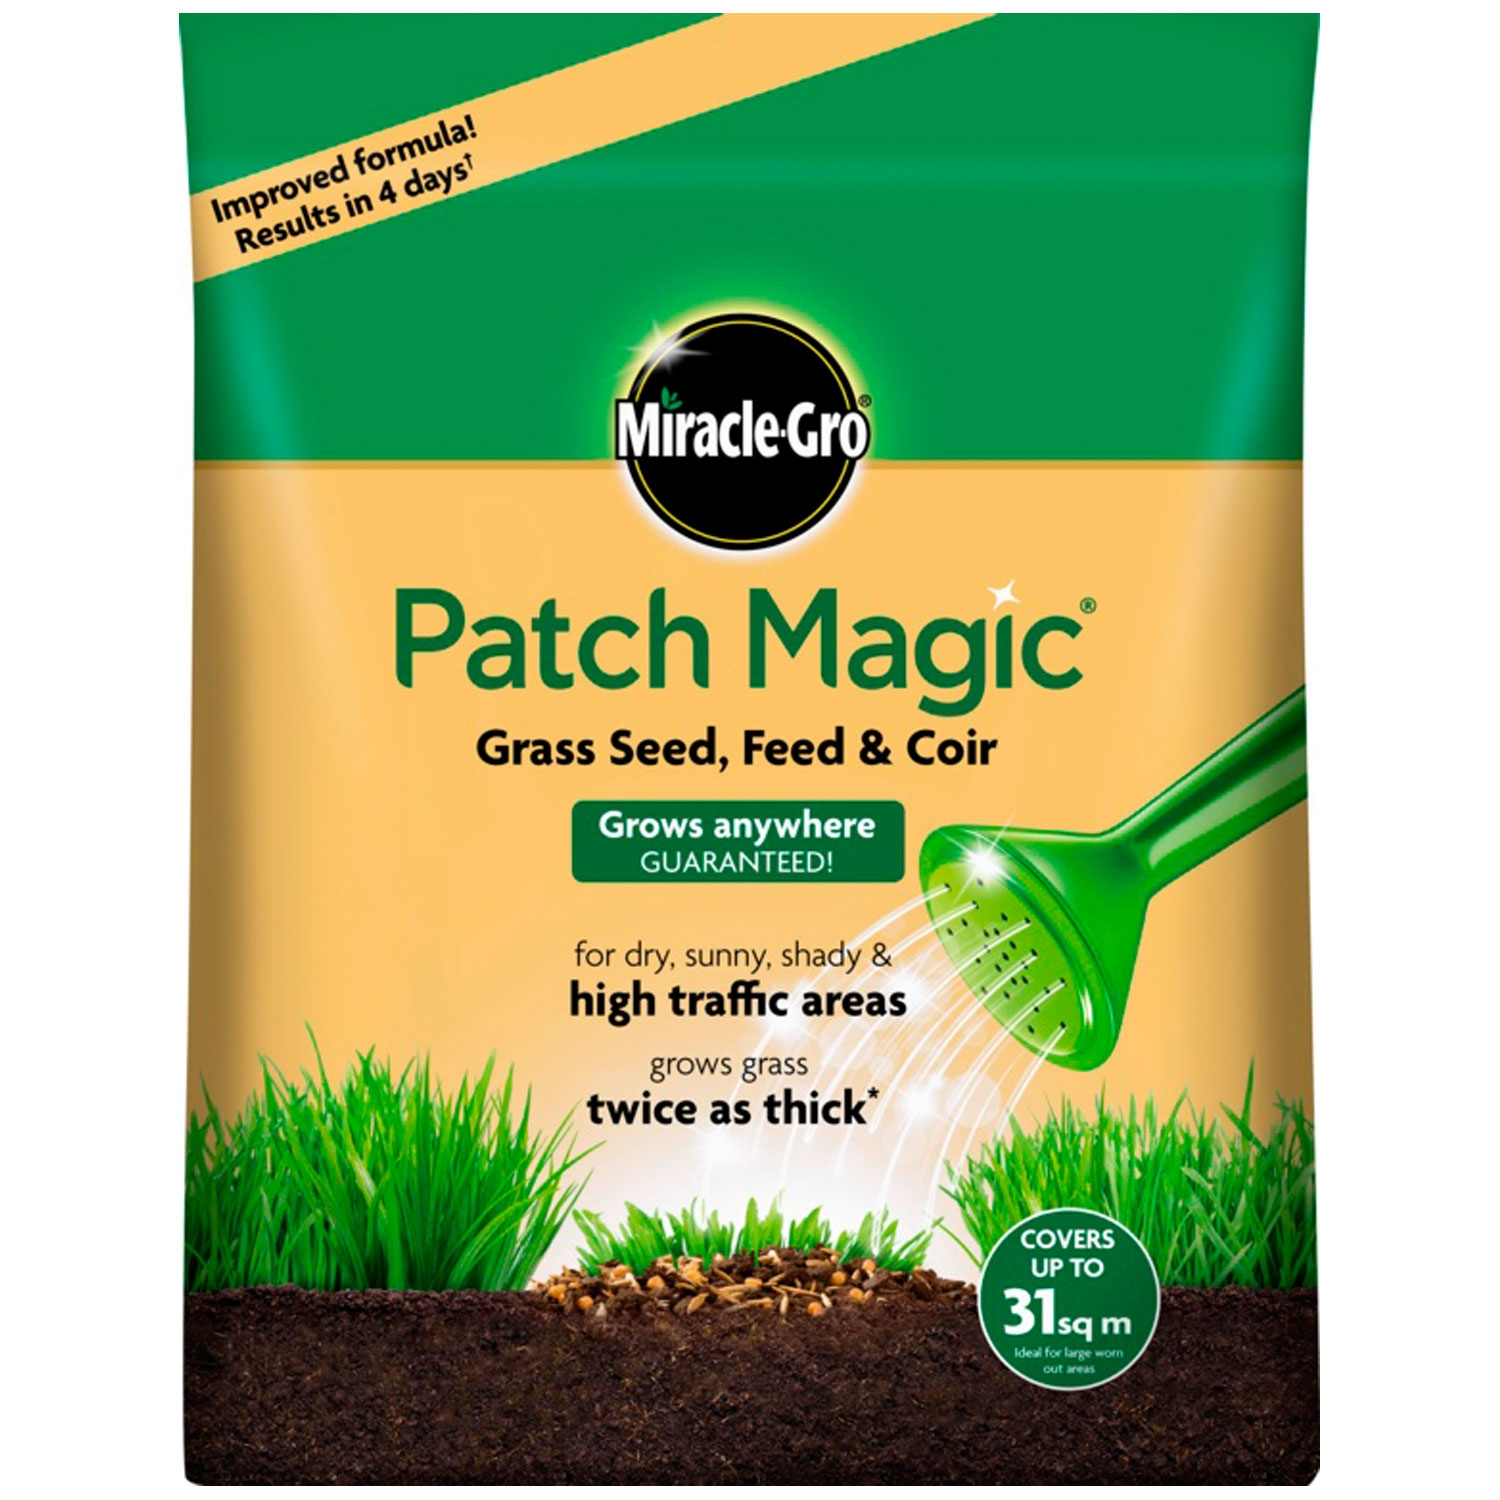 Miracle-Gro Patch Magic 7kg